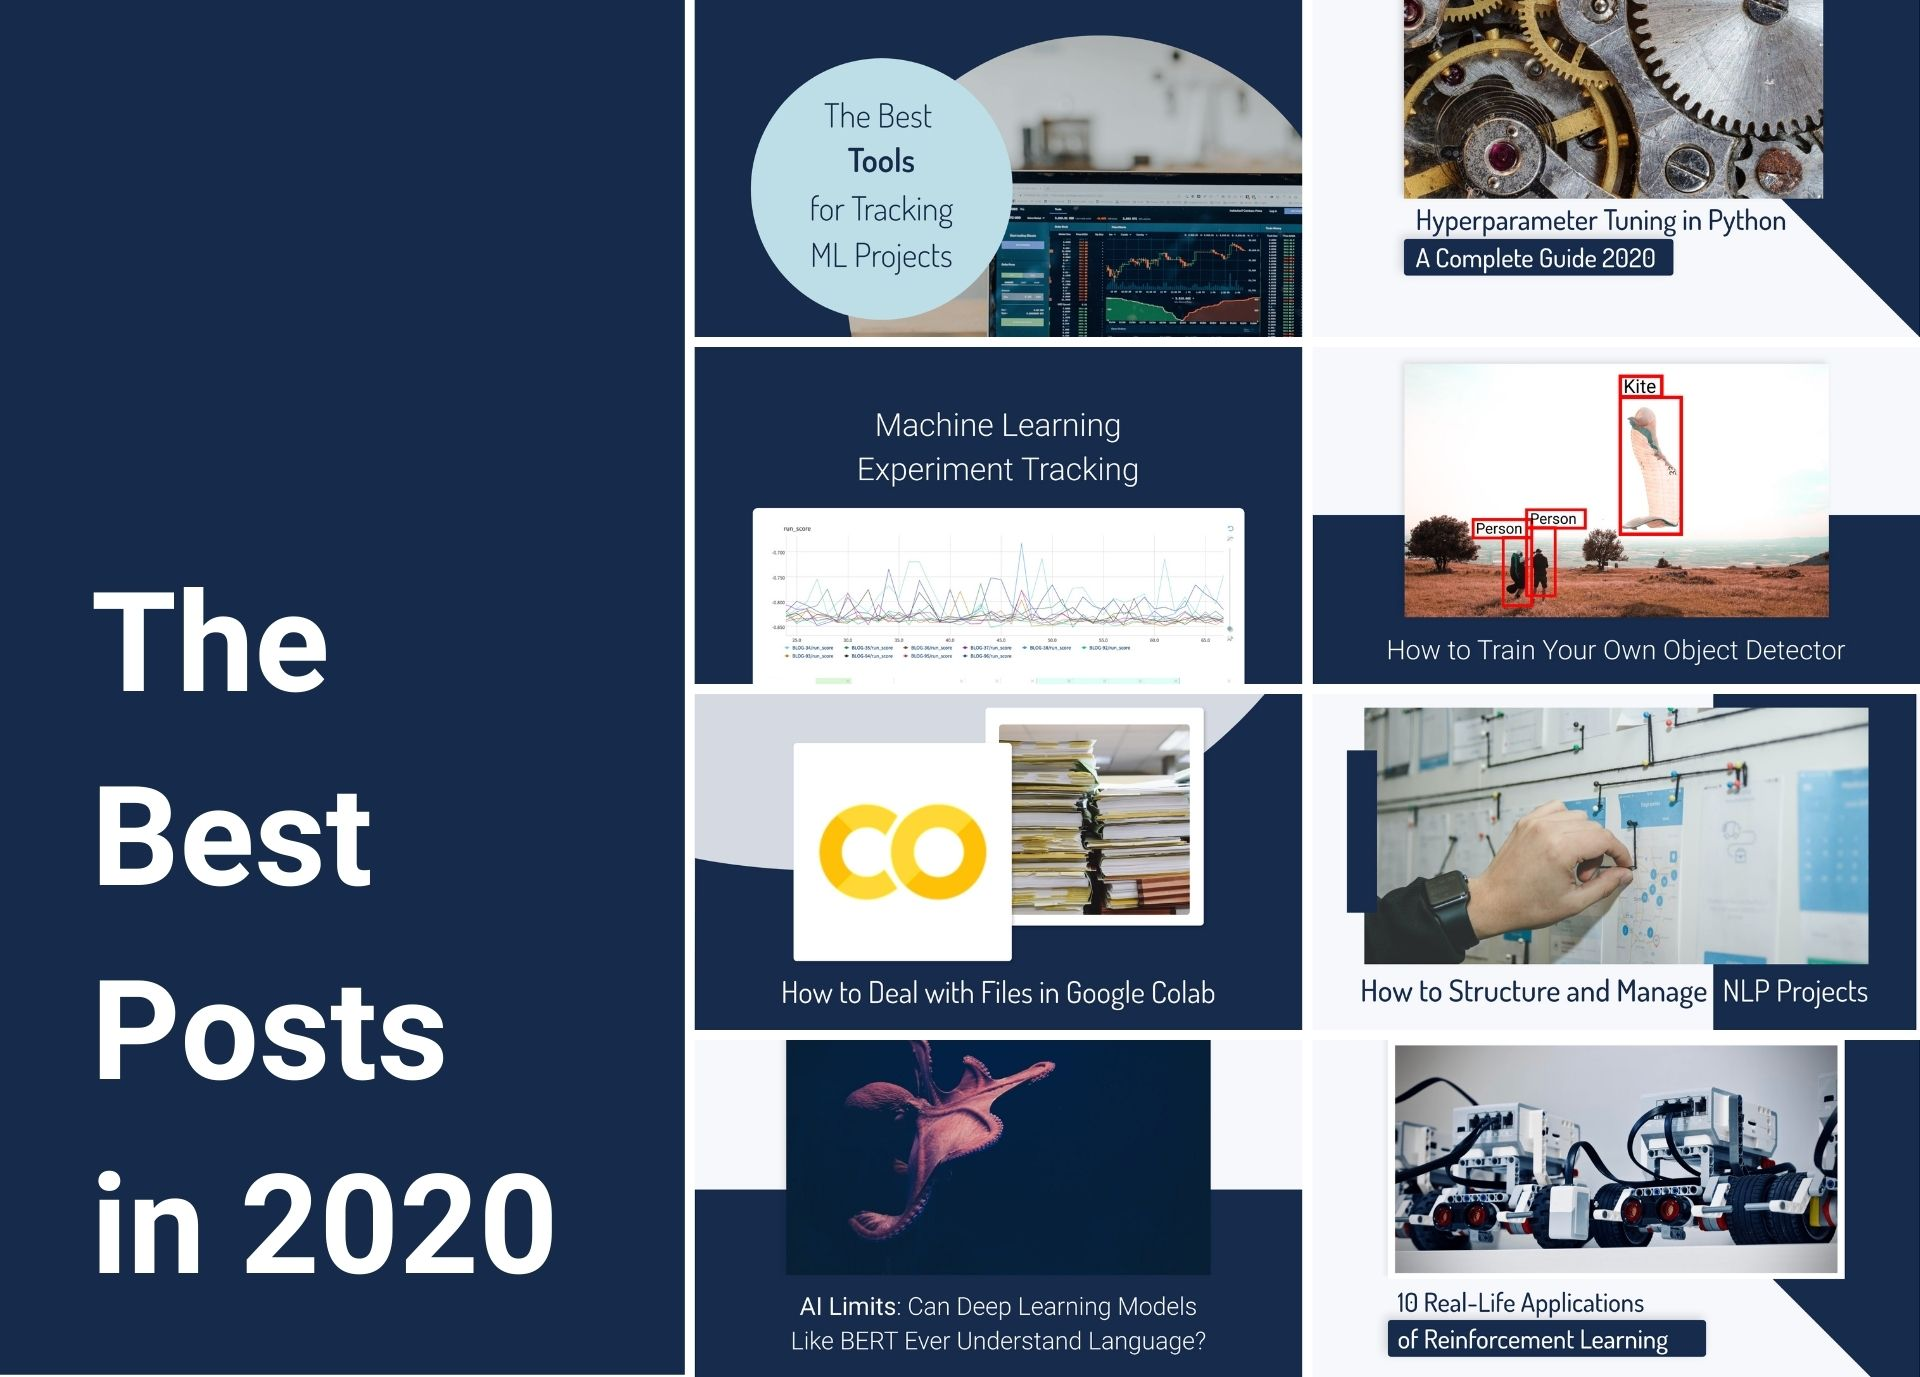 The Best Posts in 2020 – Neptune's Blog Summary